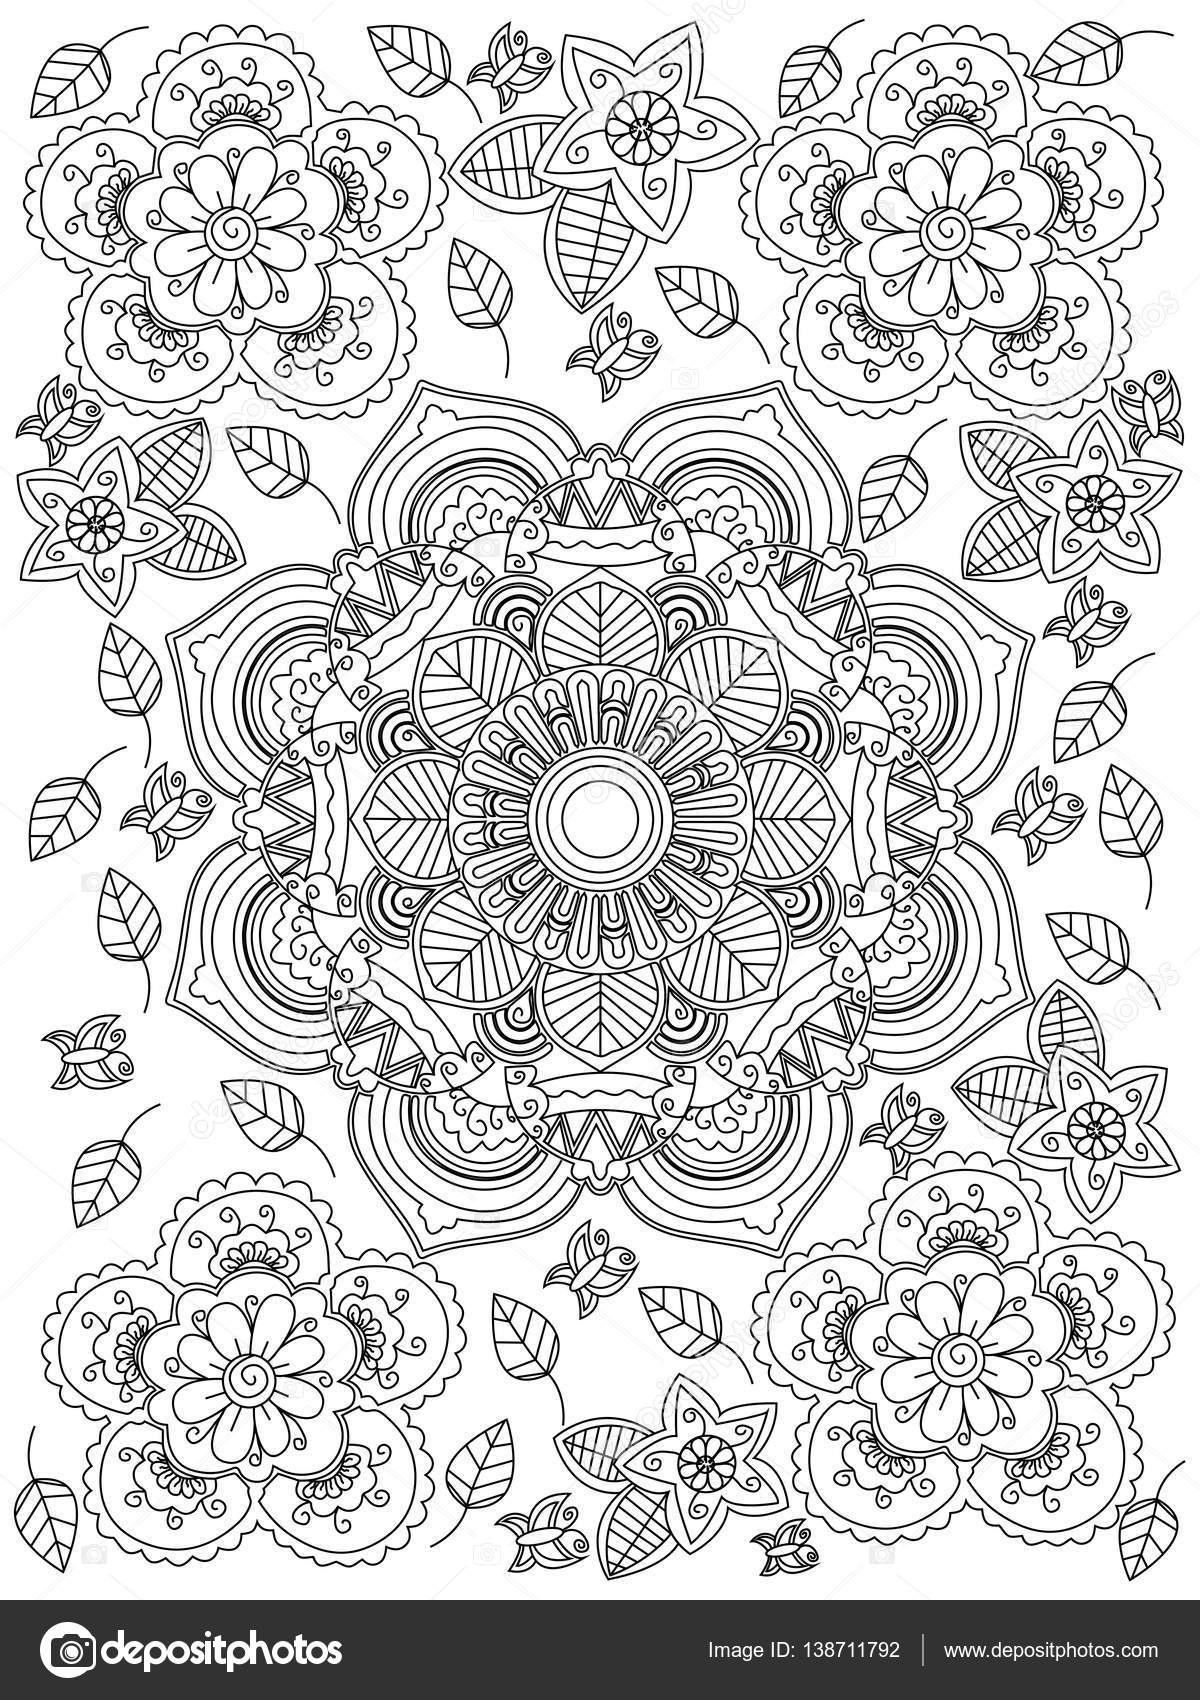 frida kahlo coloring pages - stock illustration mandala flower coloring vector for